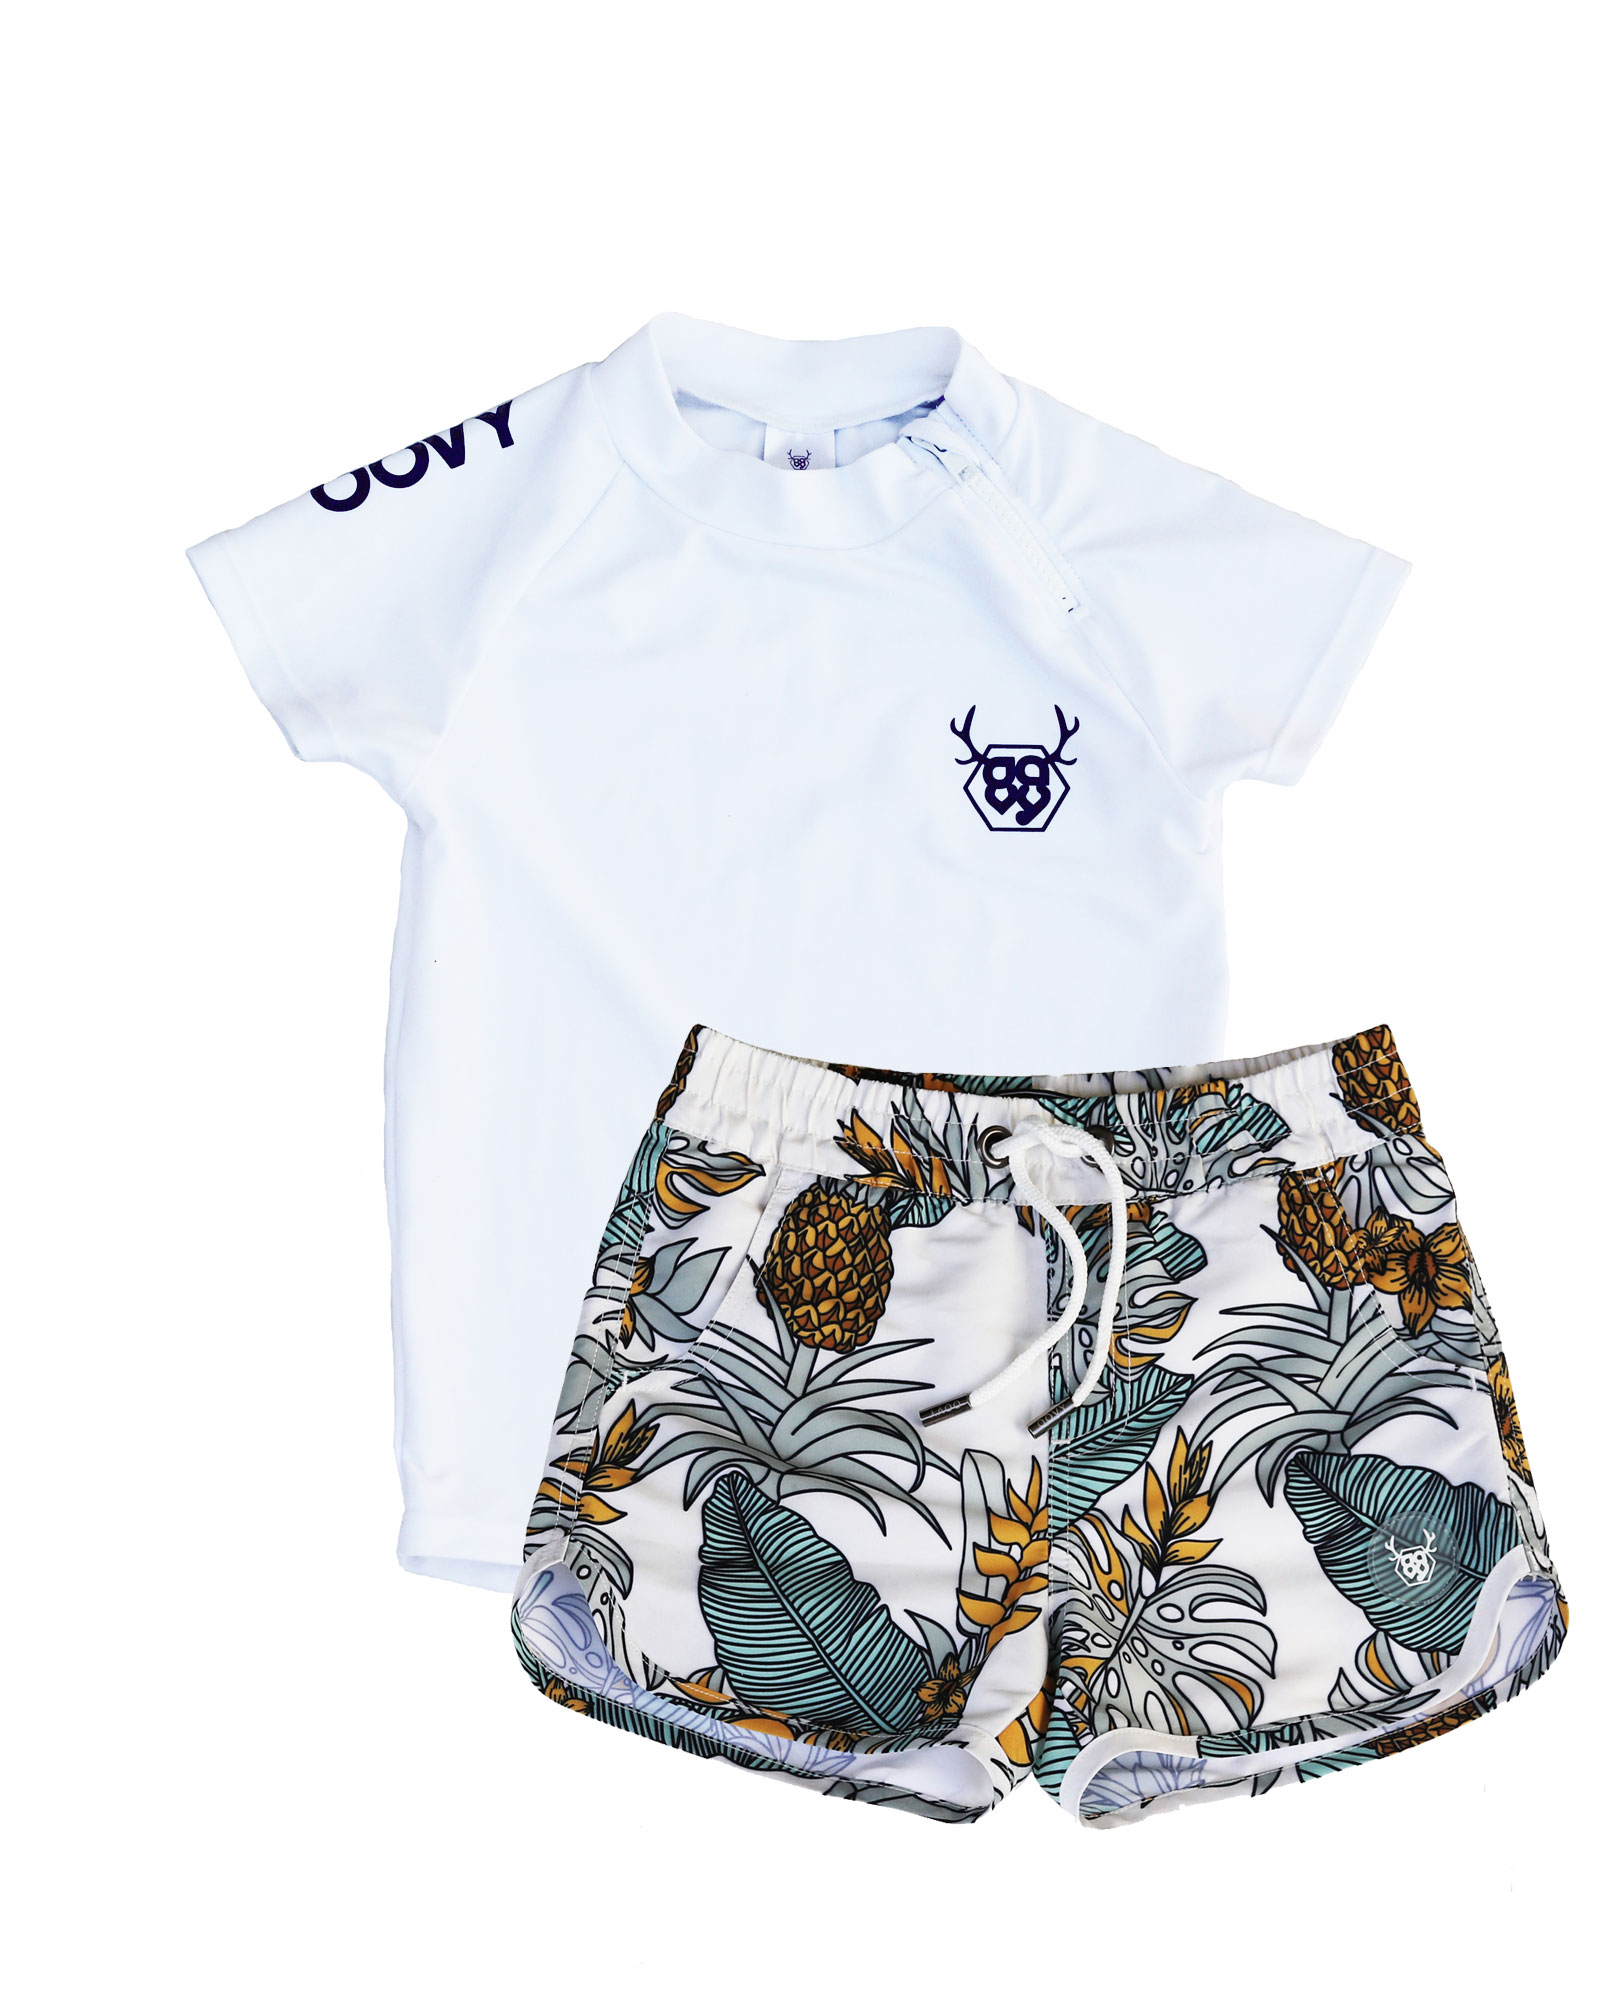 OOVY Kids Bahamas Boardshorts and Rashie Set